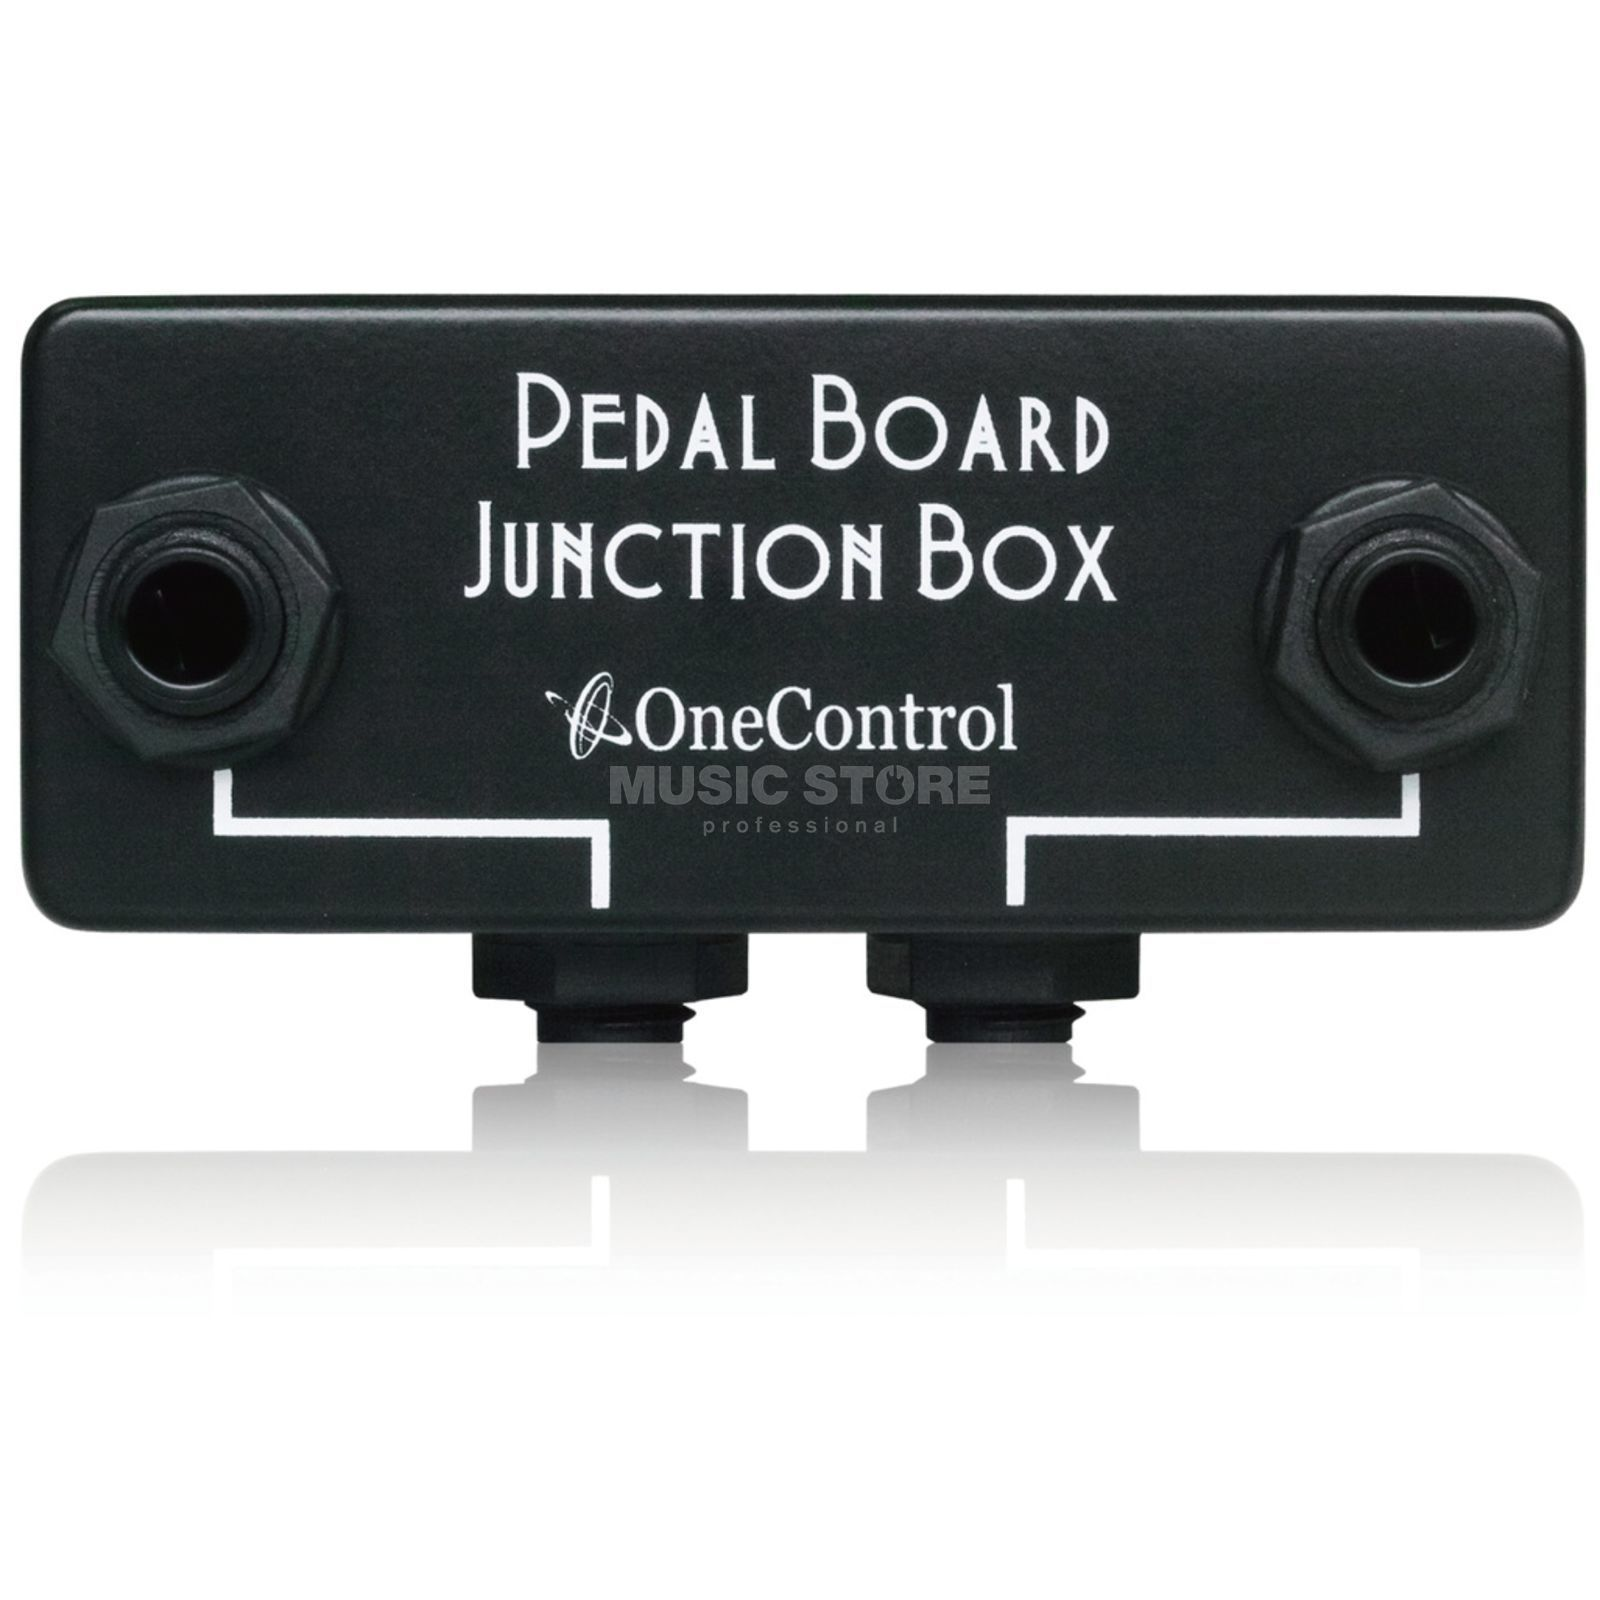 One Control Junction Box Imagem do produto